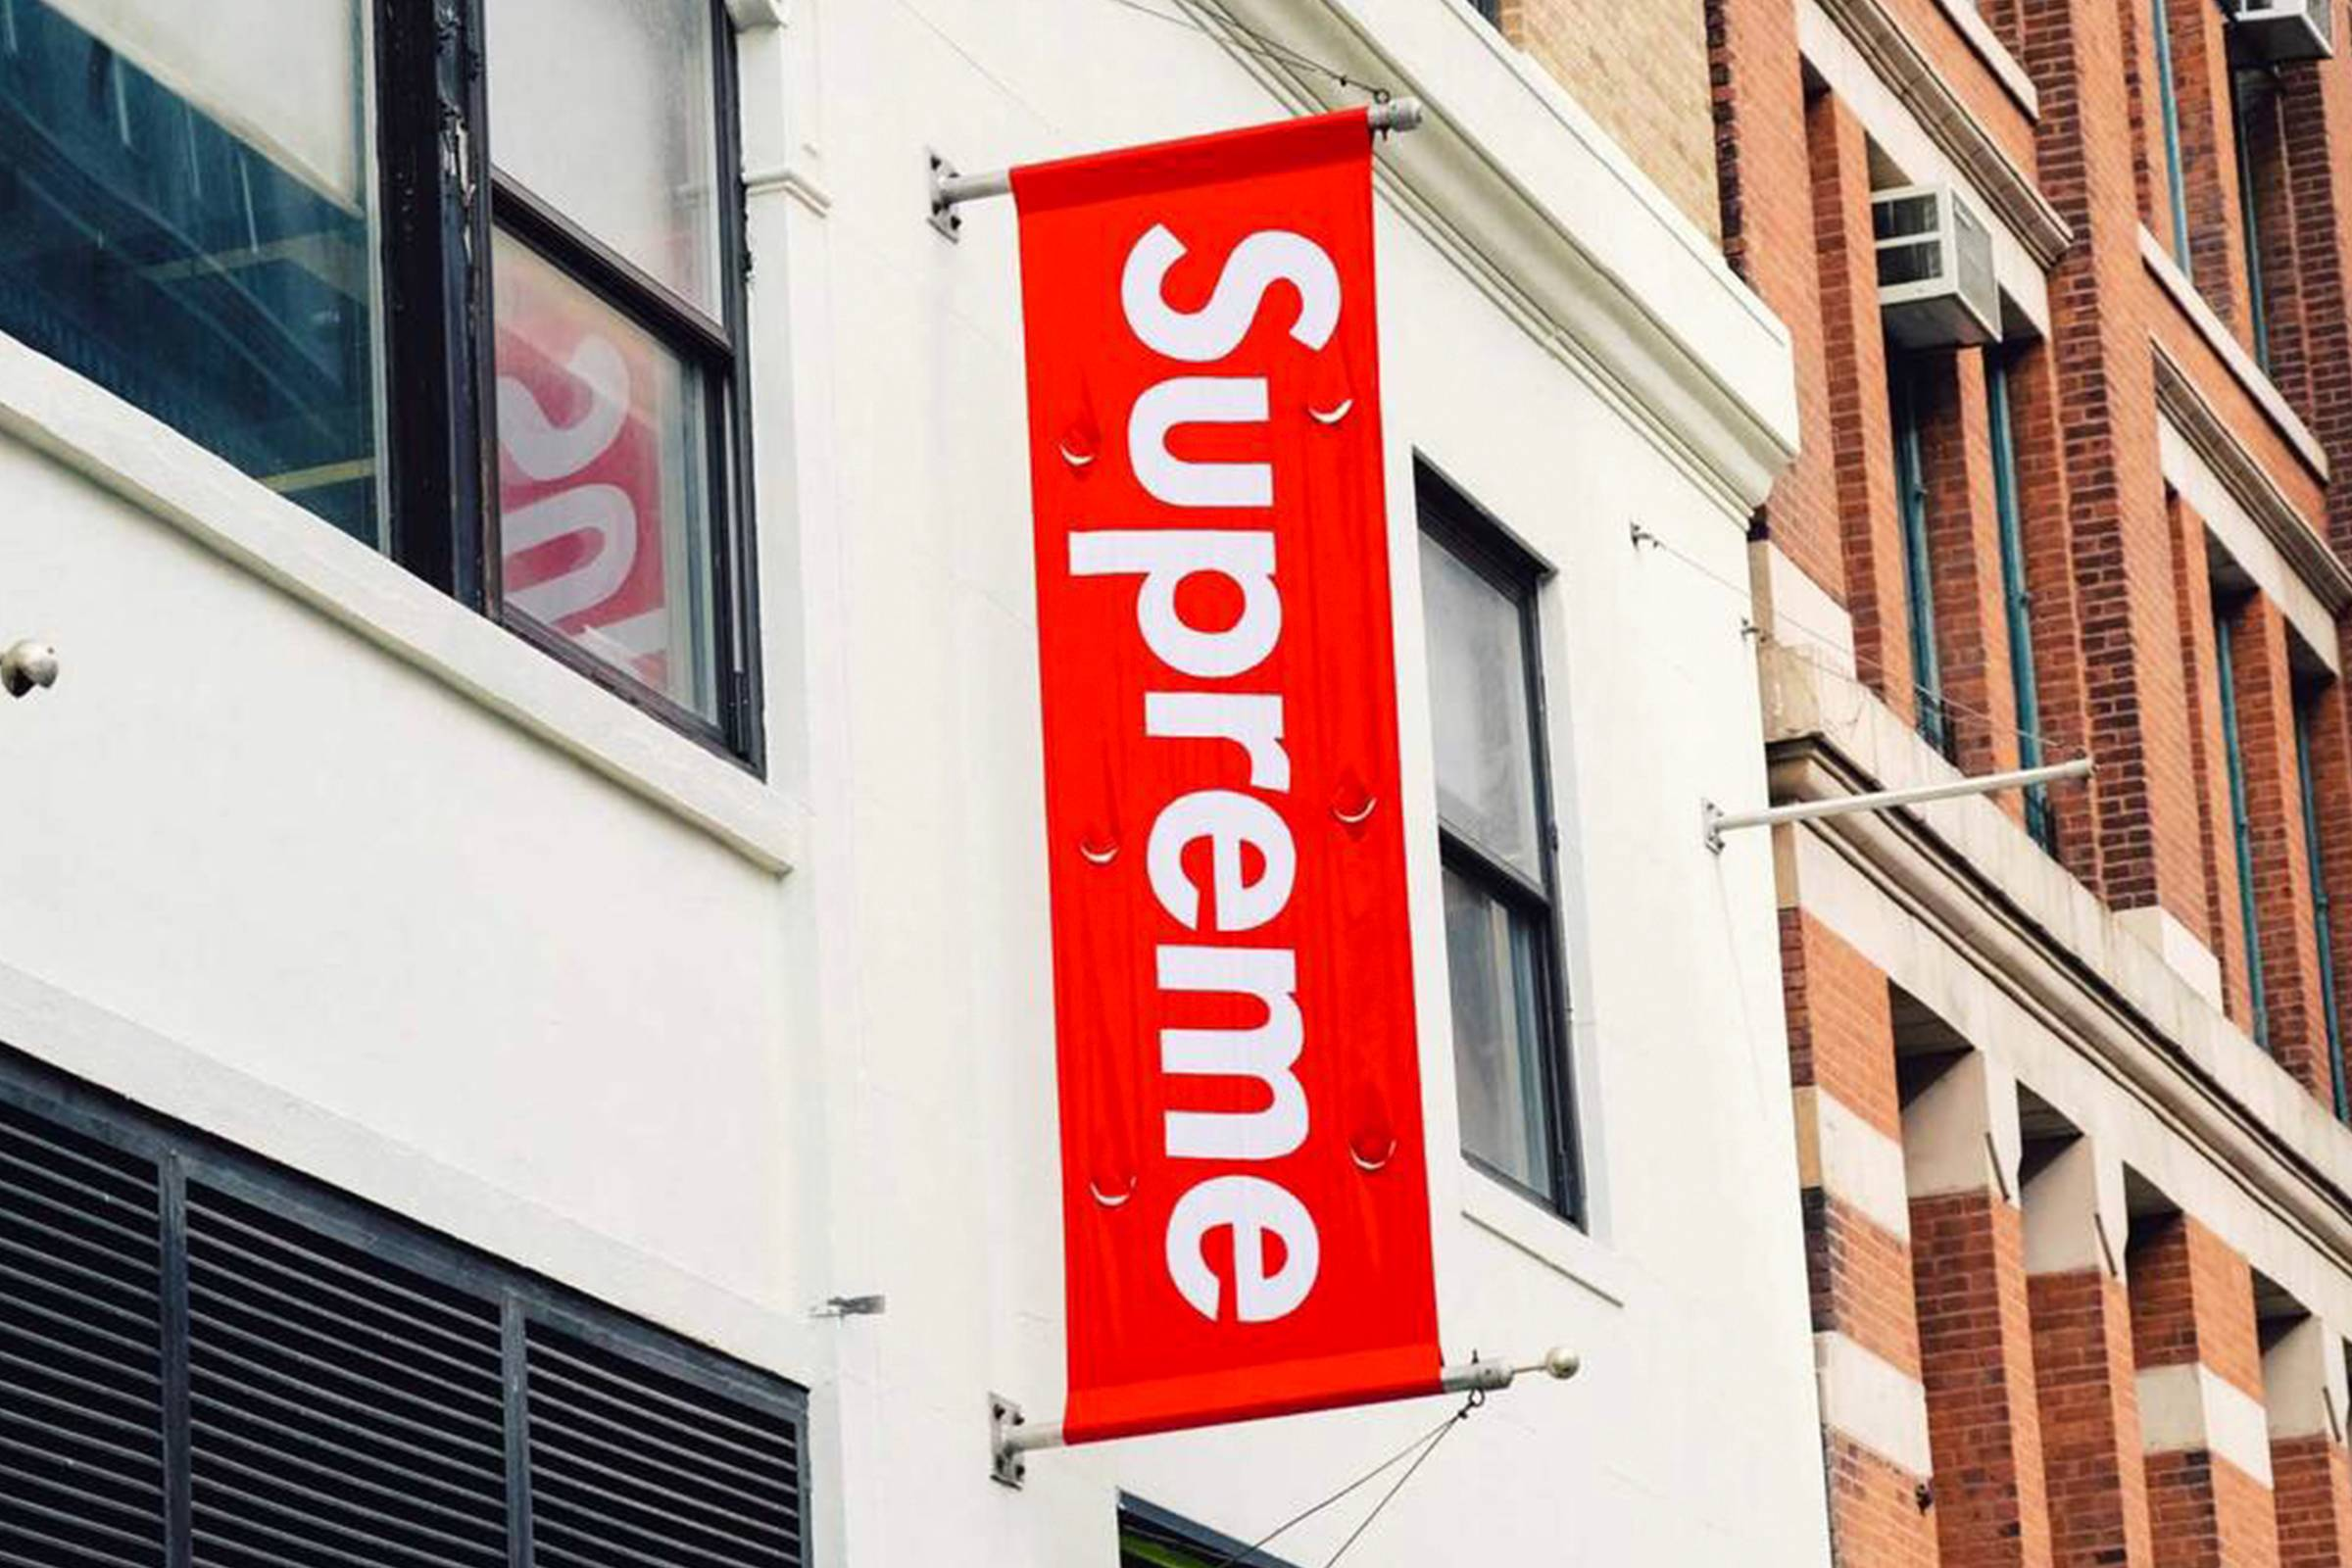 A Guide to Every Supreme Store in the World